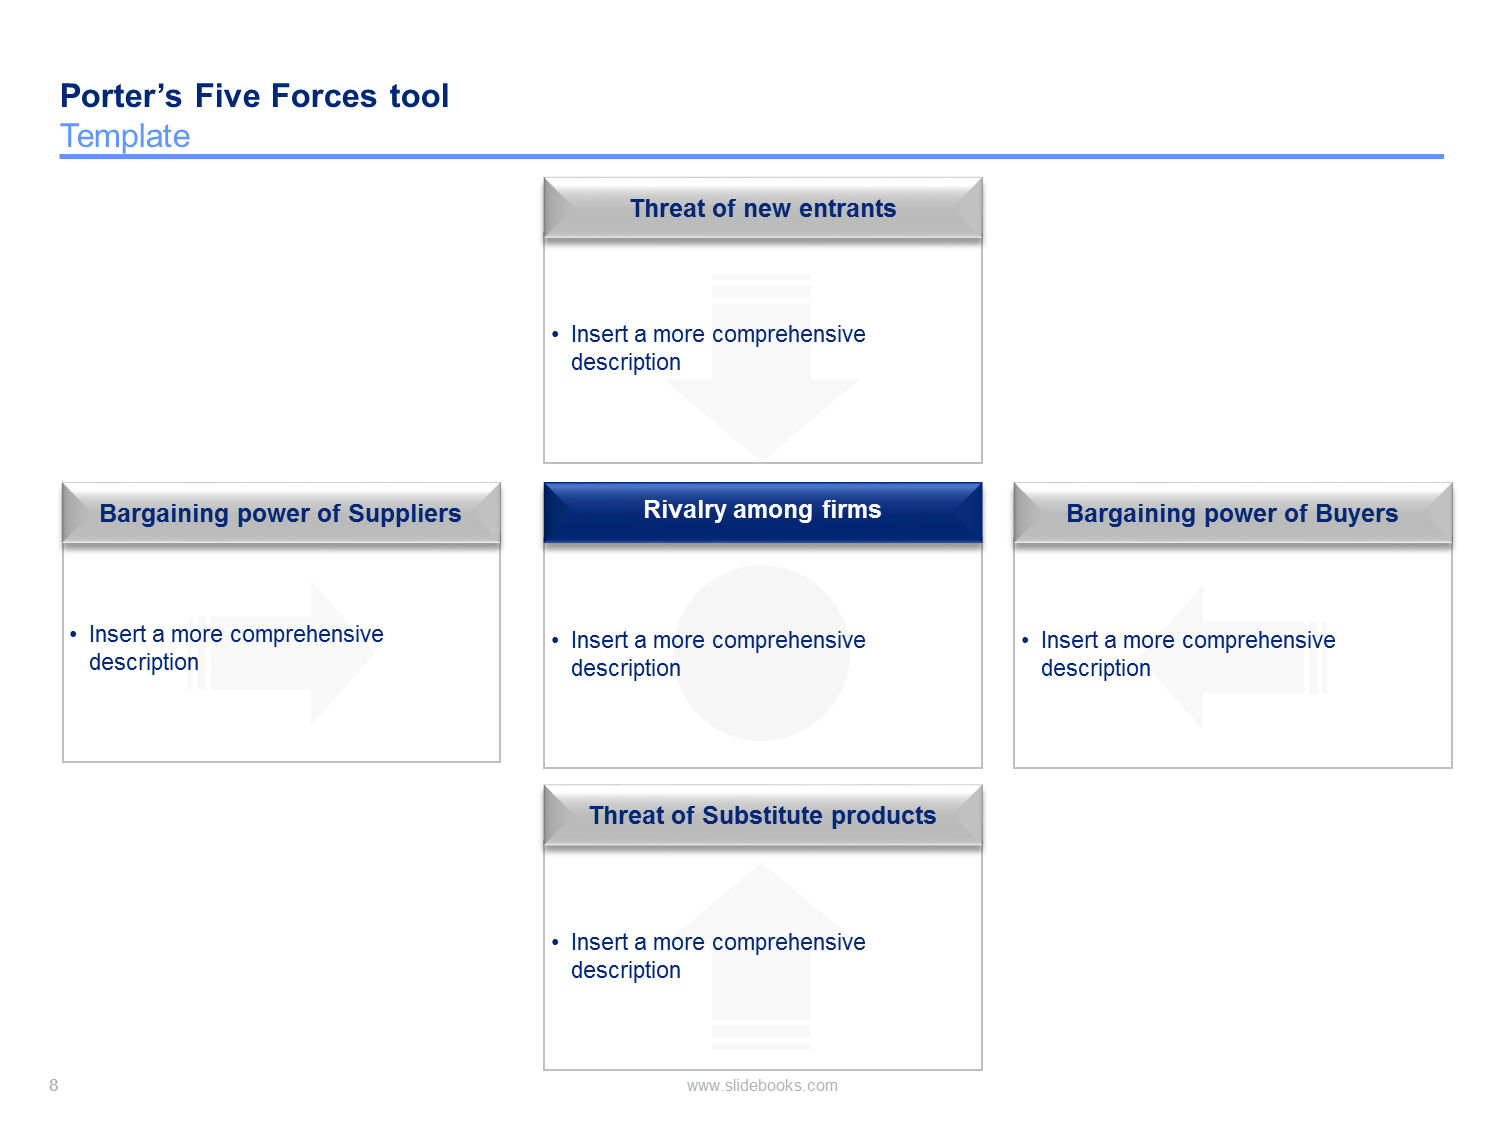 porter's five forces templates | porter's five forces templates | by